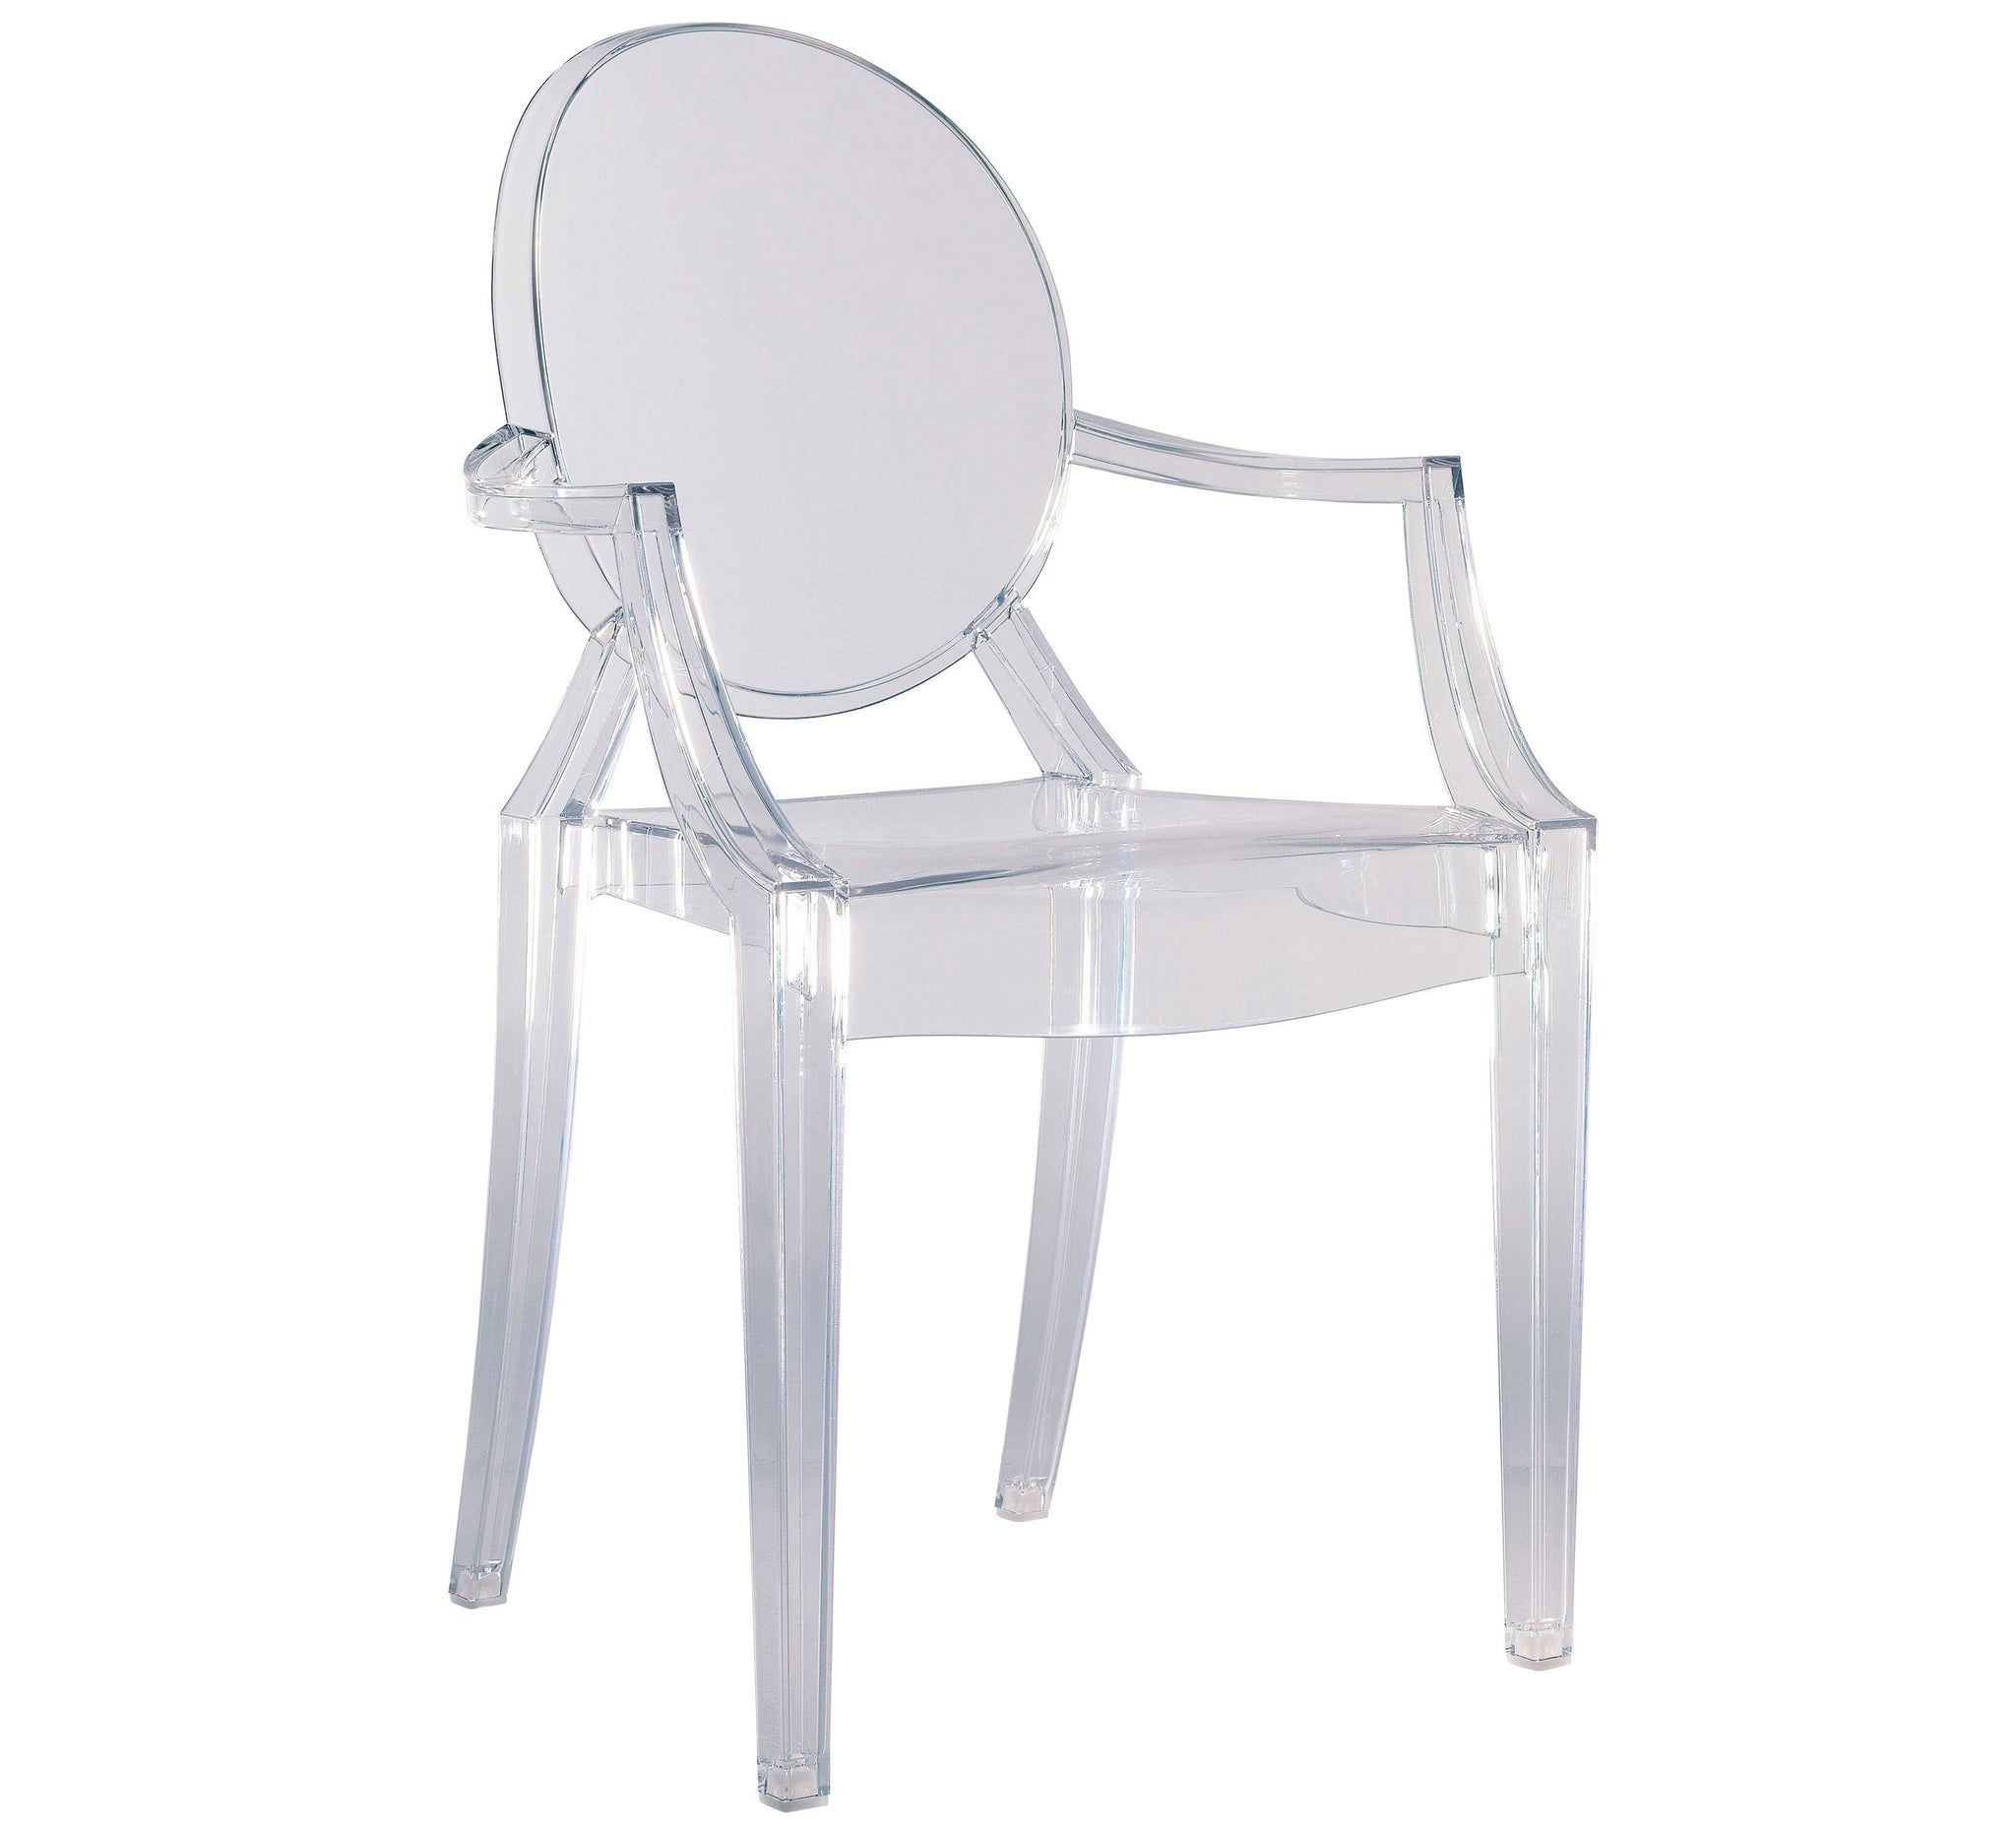 Kartell Louis Ghost Philippe Starck Set Of 2 Pieces Mistico Store